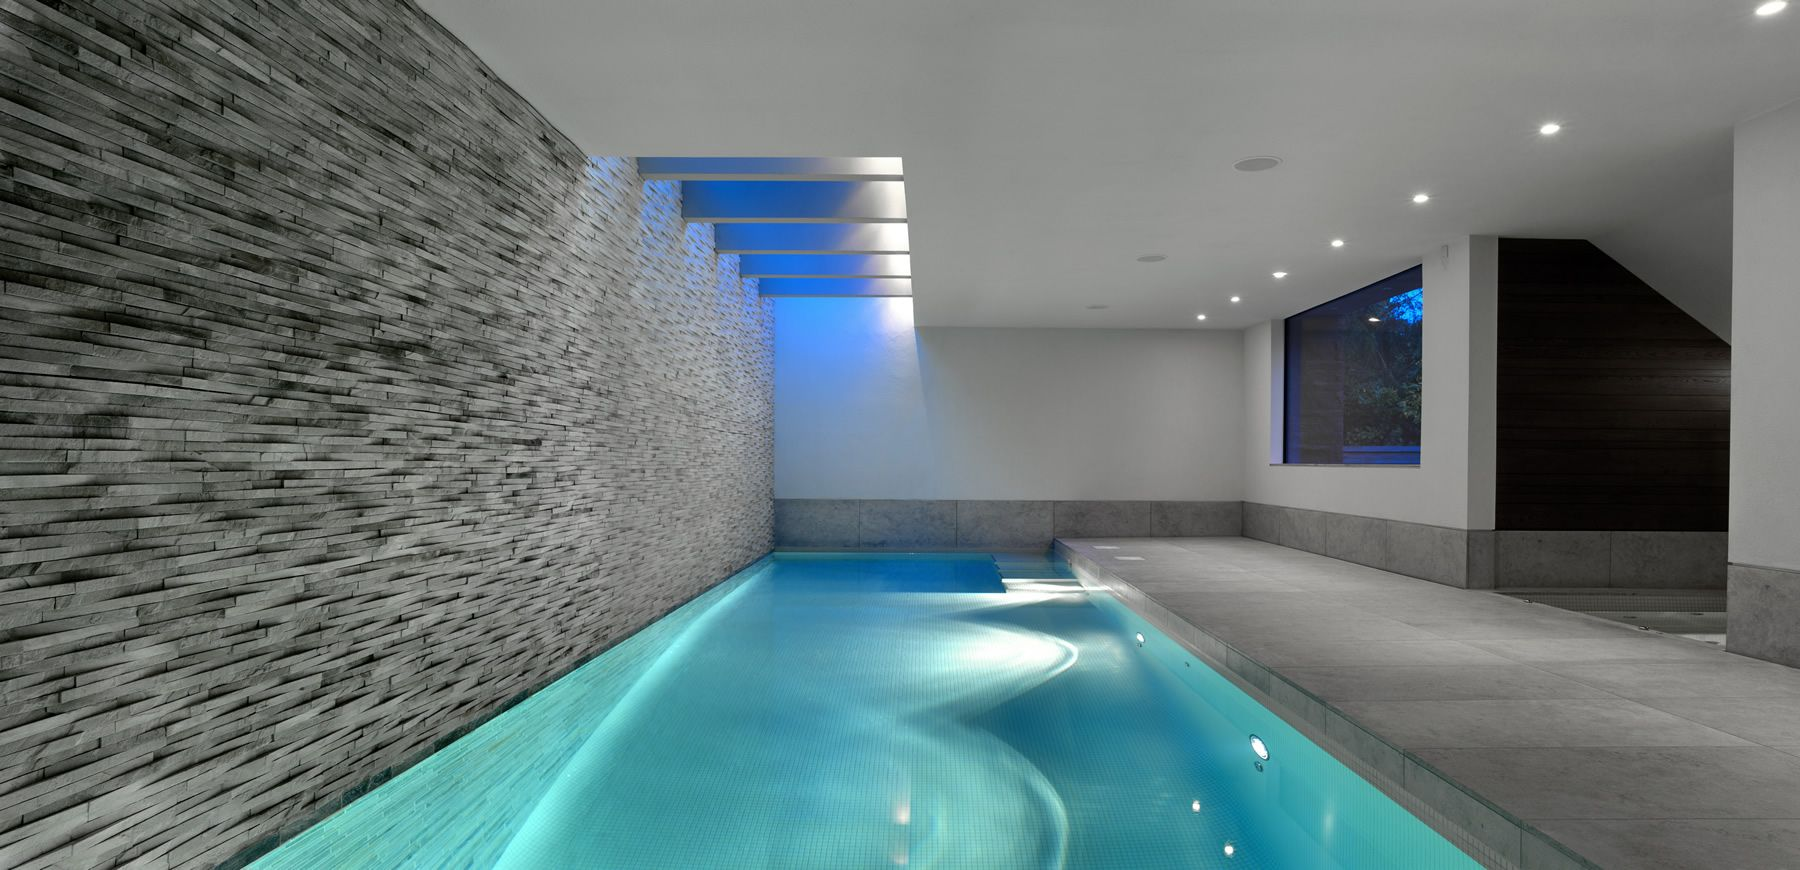 Indoor pool ideas pool decor swimming pool design tags for Indoor nature design challenge